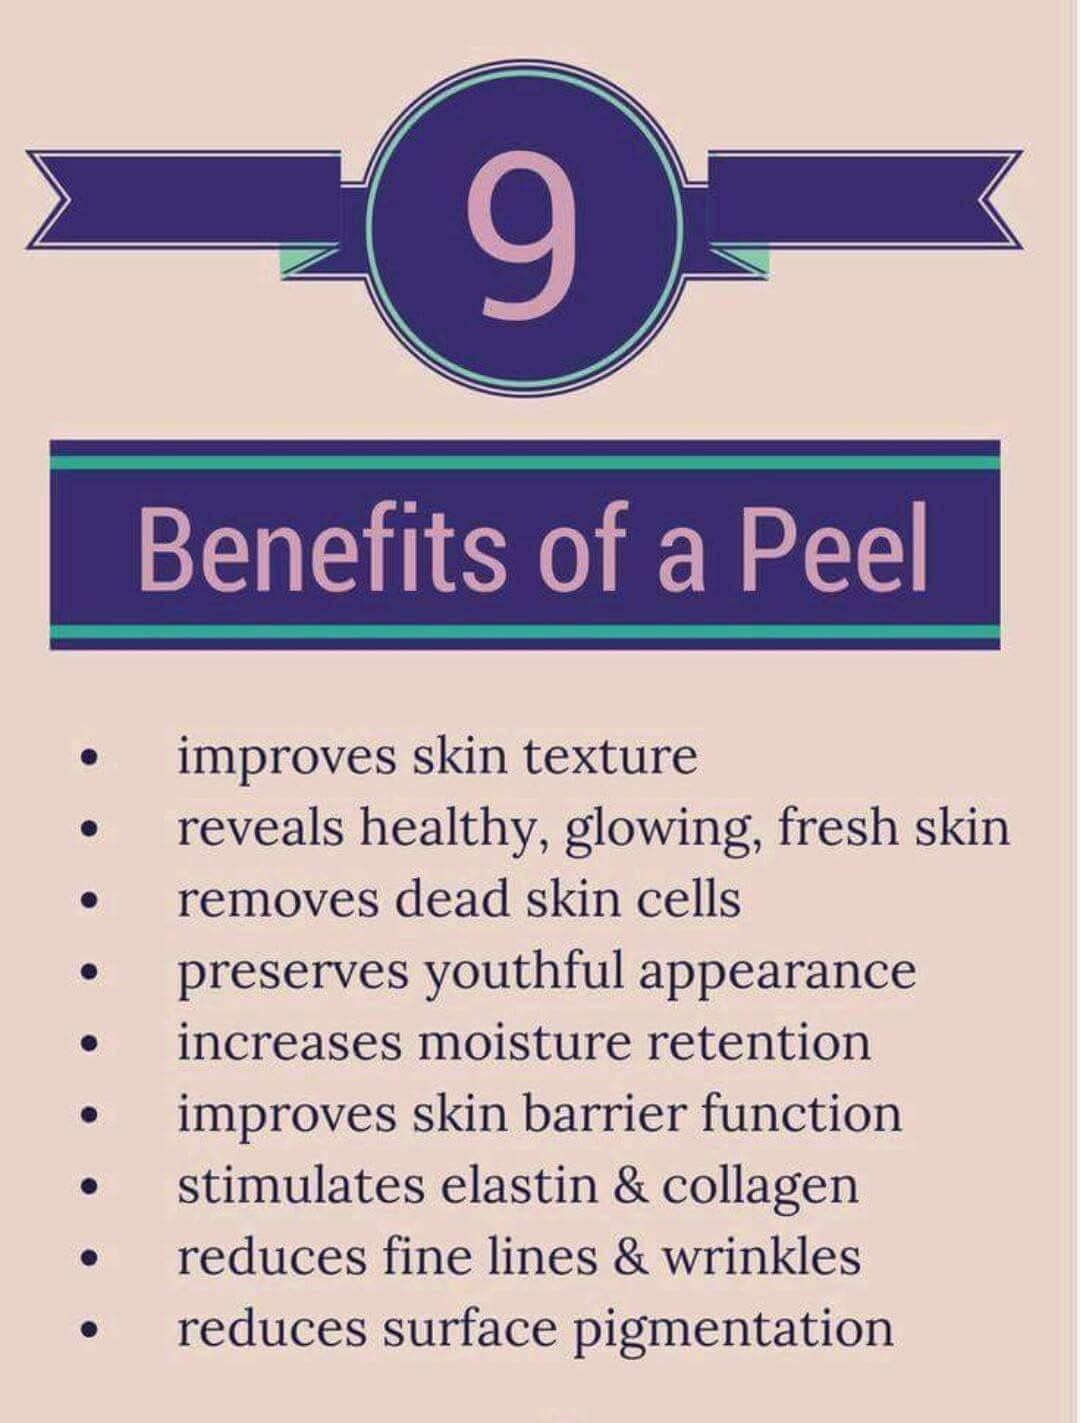 Skin care image by The Beauty Spot on Treatment